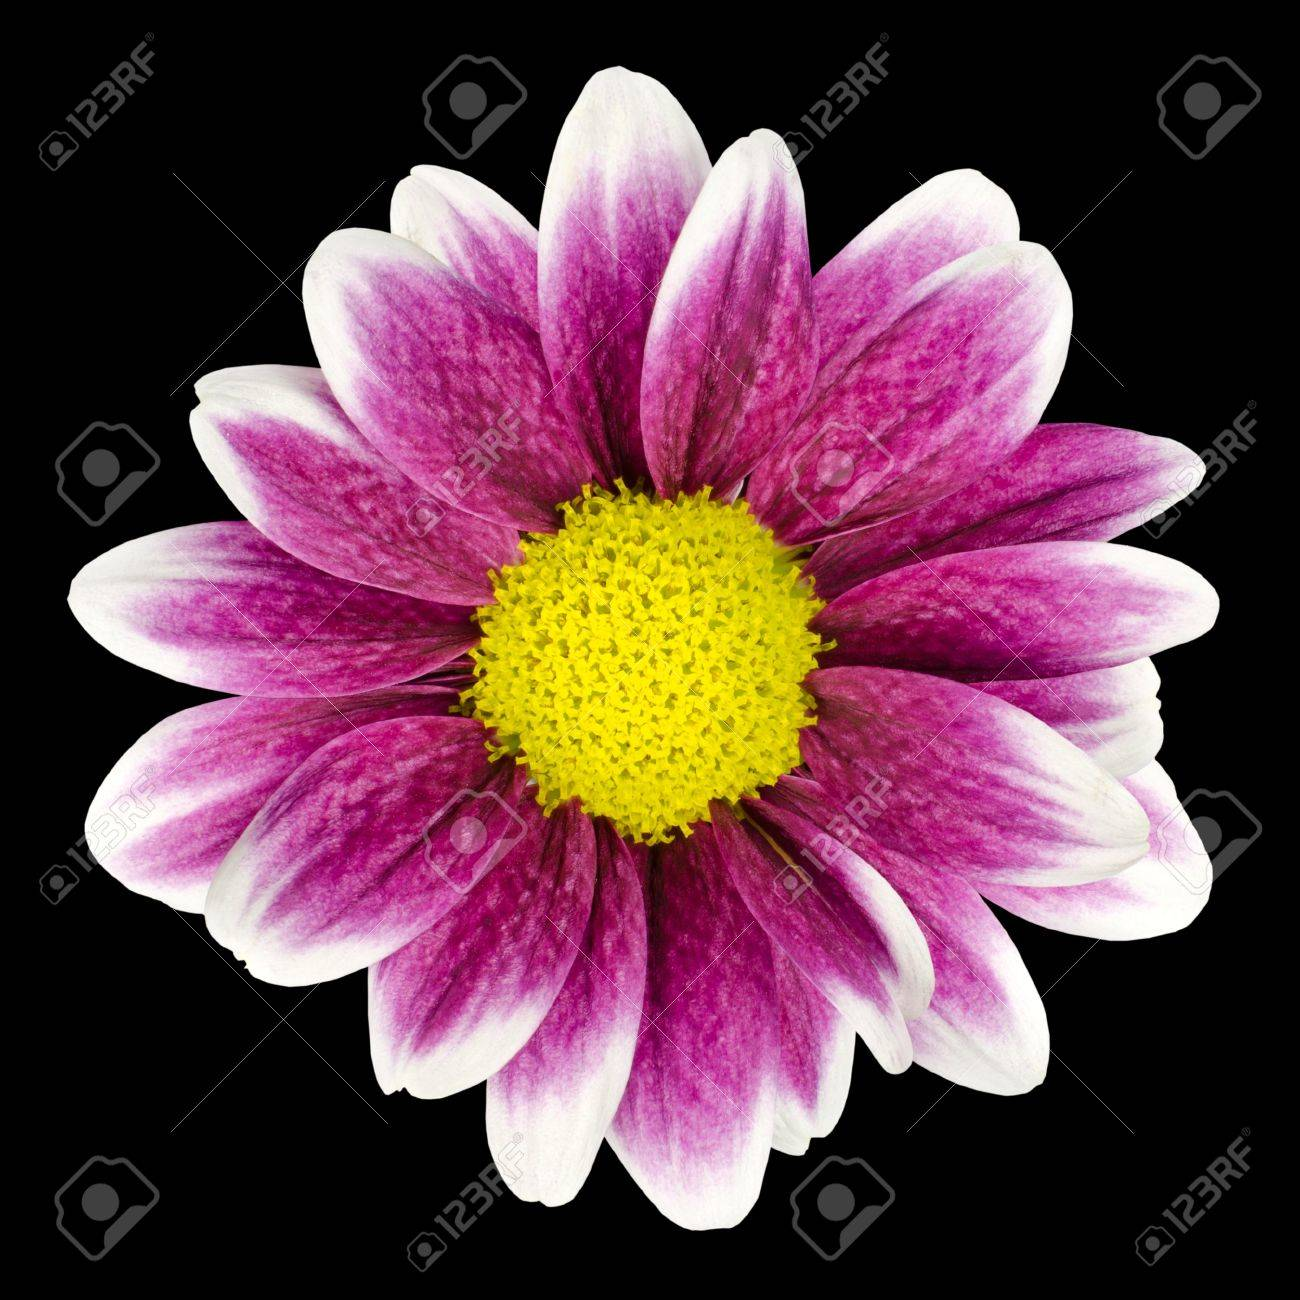 Purple Dahlia Flower With Yellow Center And White Leaf Edges Stock